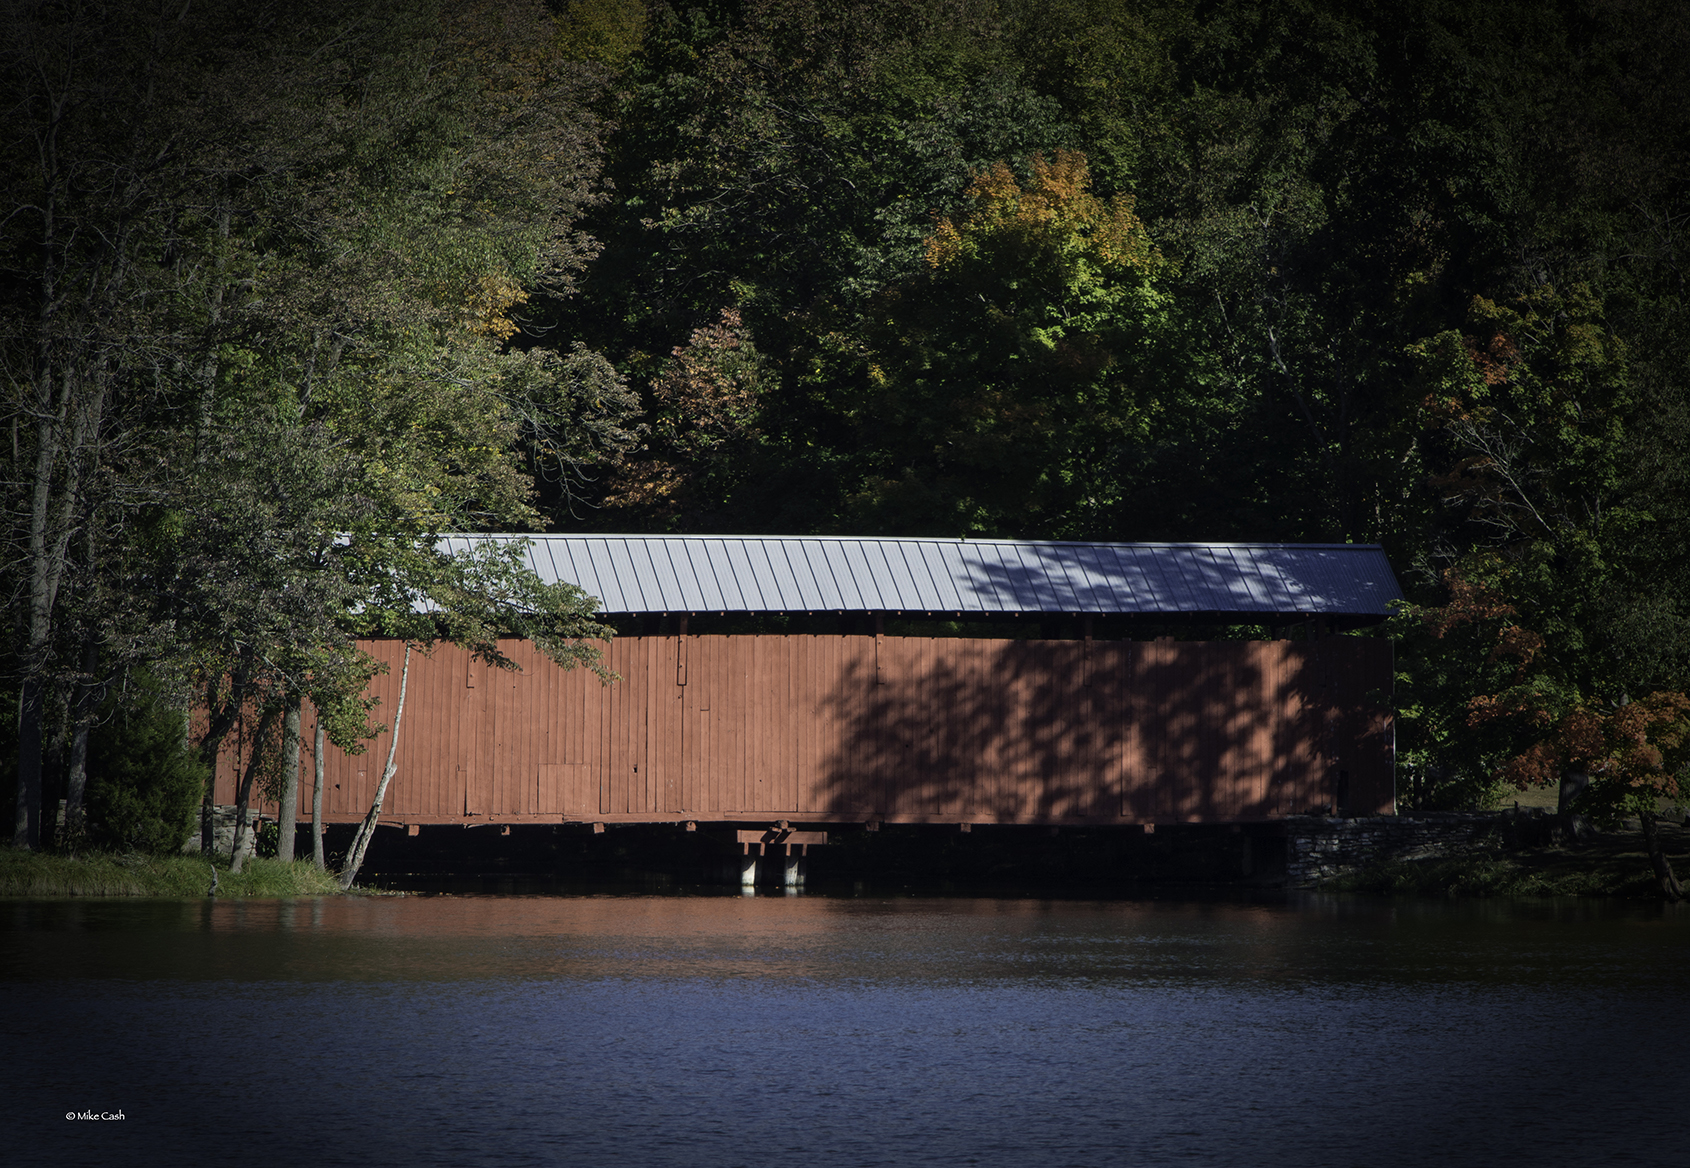 Lots of covered bridges in Indiana.  Its nice to see one preserved in the park.